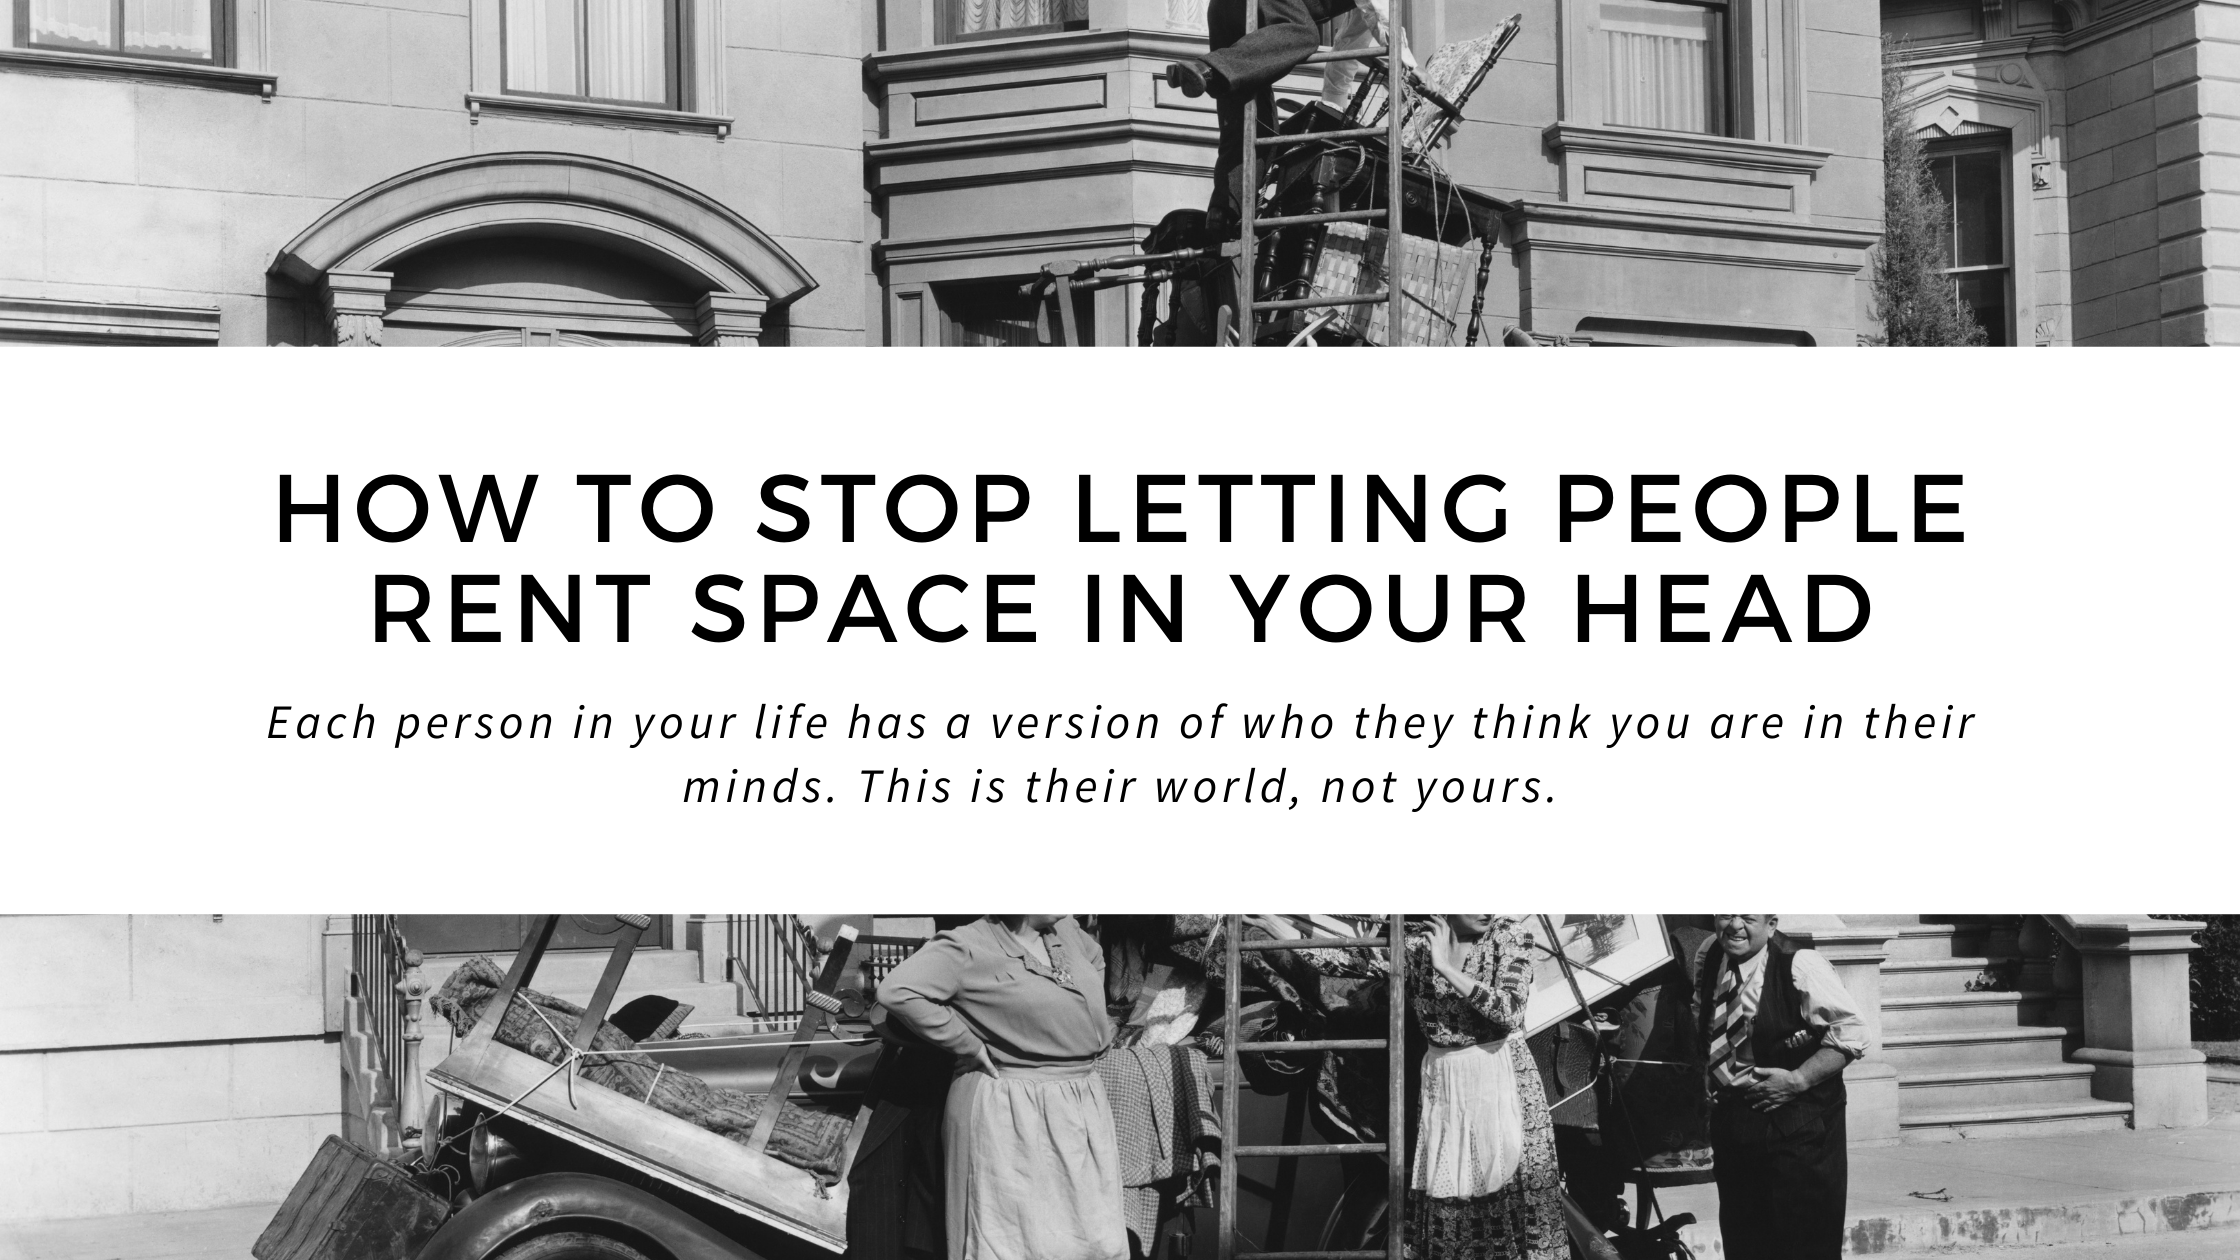 How to Stop Letting People Rent Space in Your Head